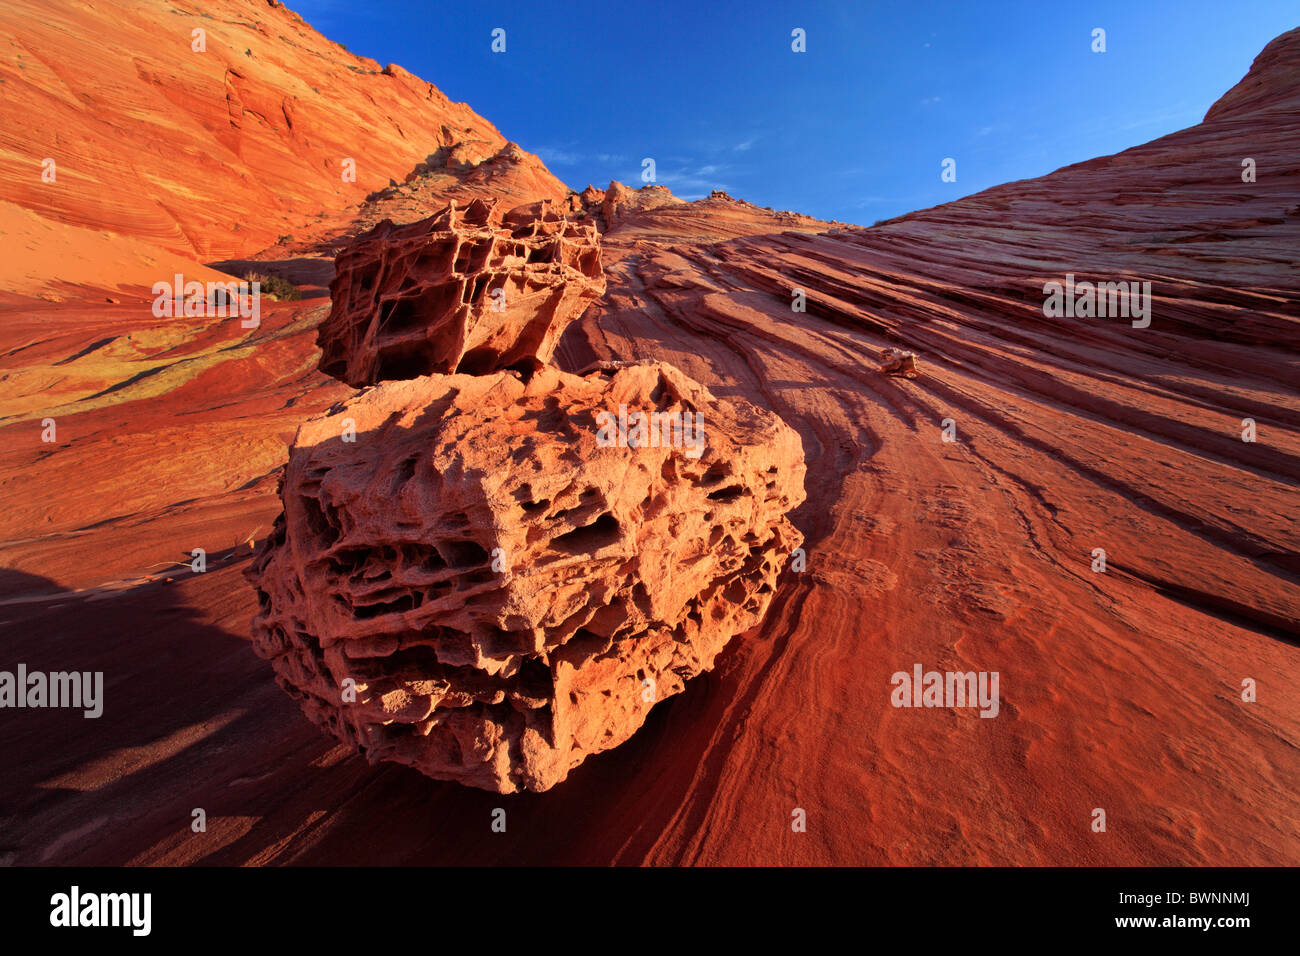 Rock formations in the 'Bone Yard' area of Vermilion Cliffs National Monument, Arizona - Stock Image